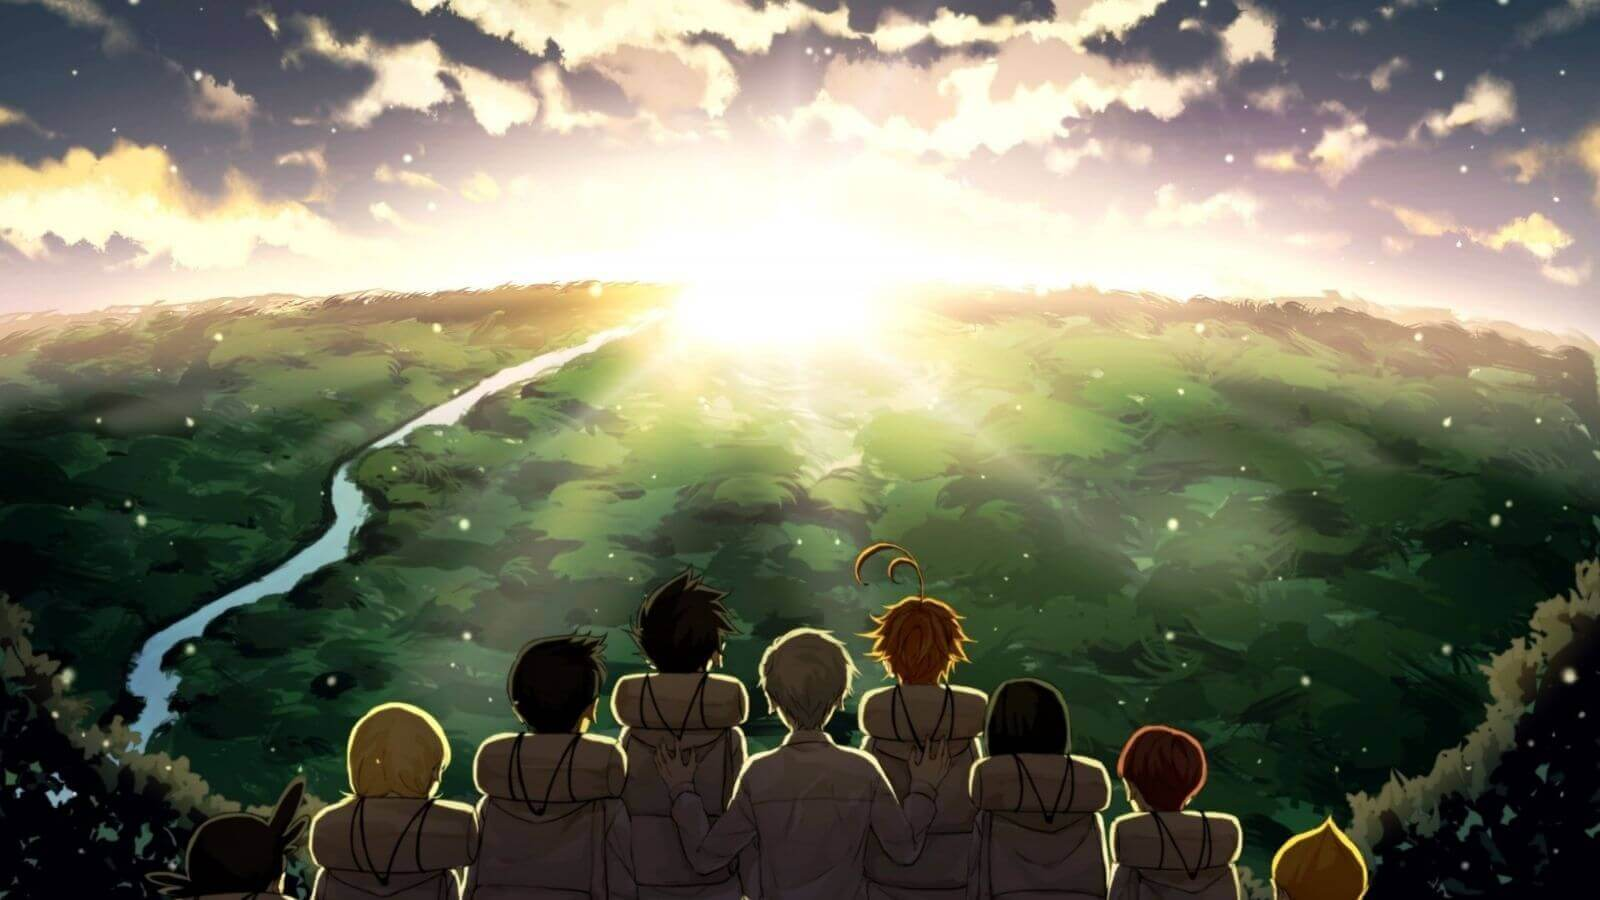 Featured image for The Promised Neverland Season 2 Episode 2 Release Date And Plot